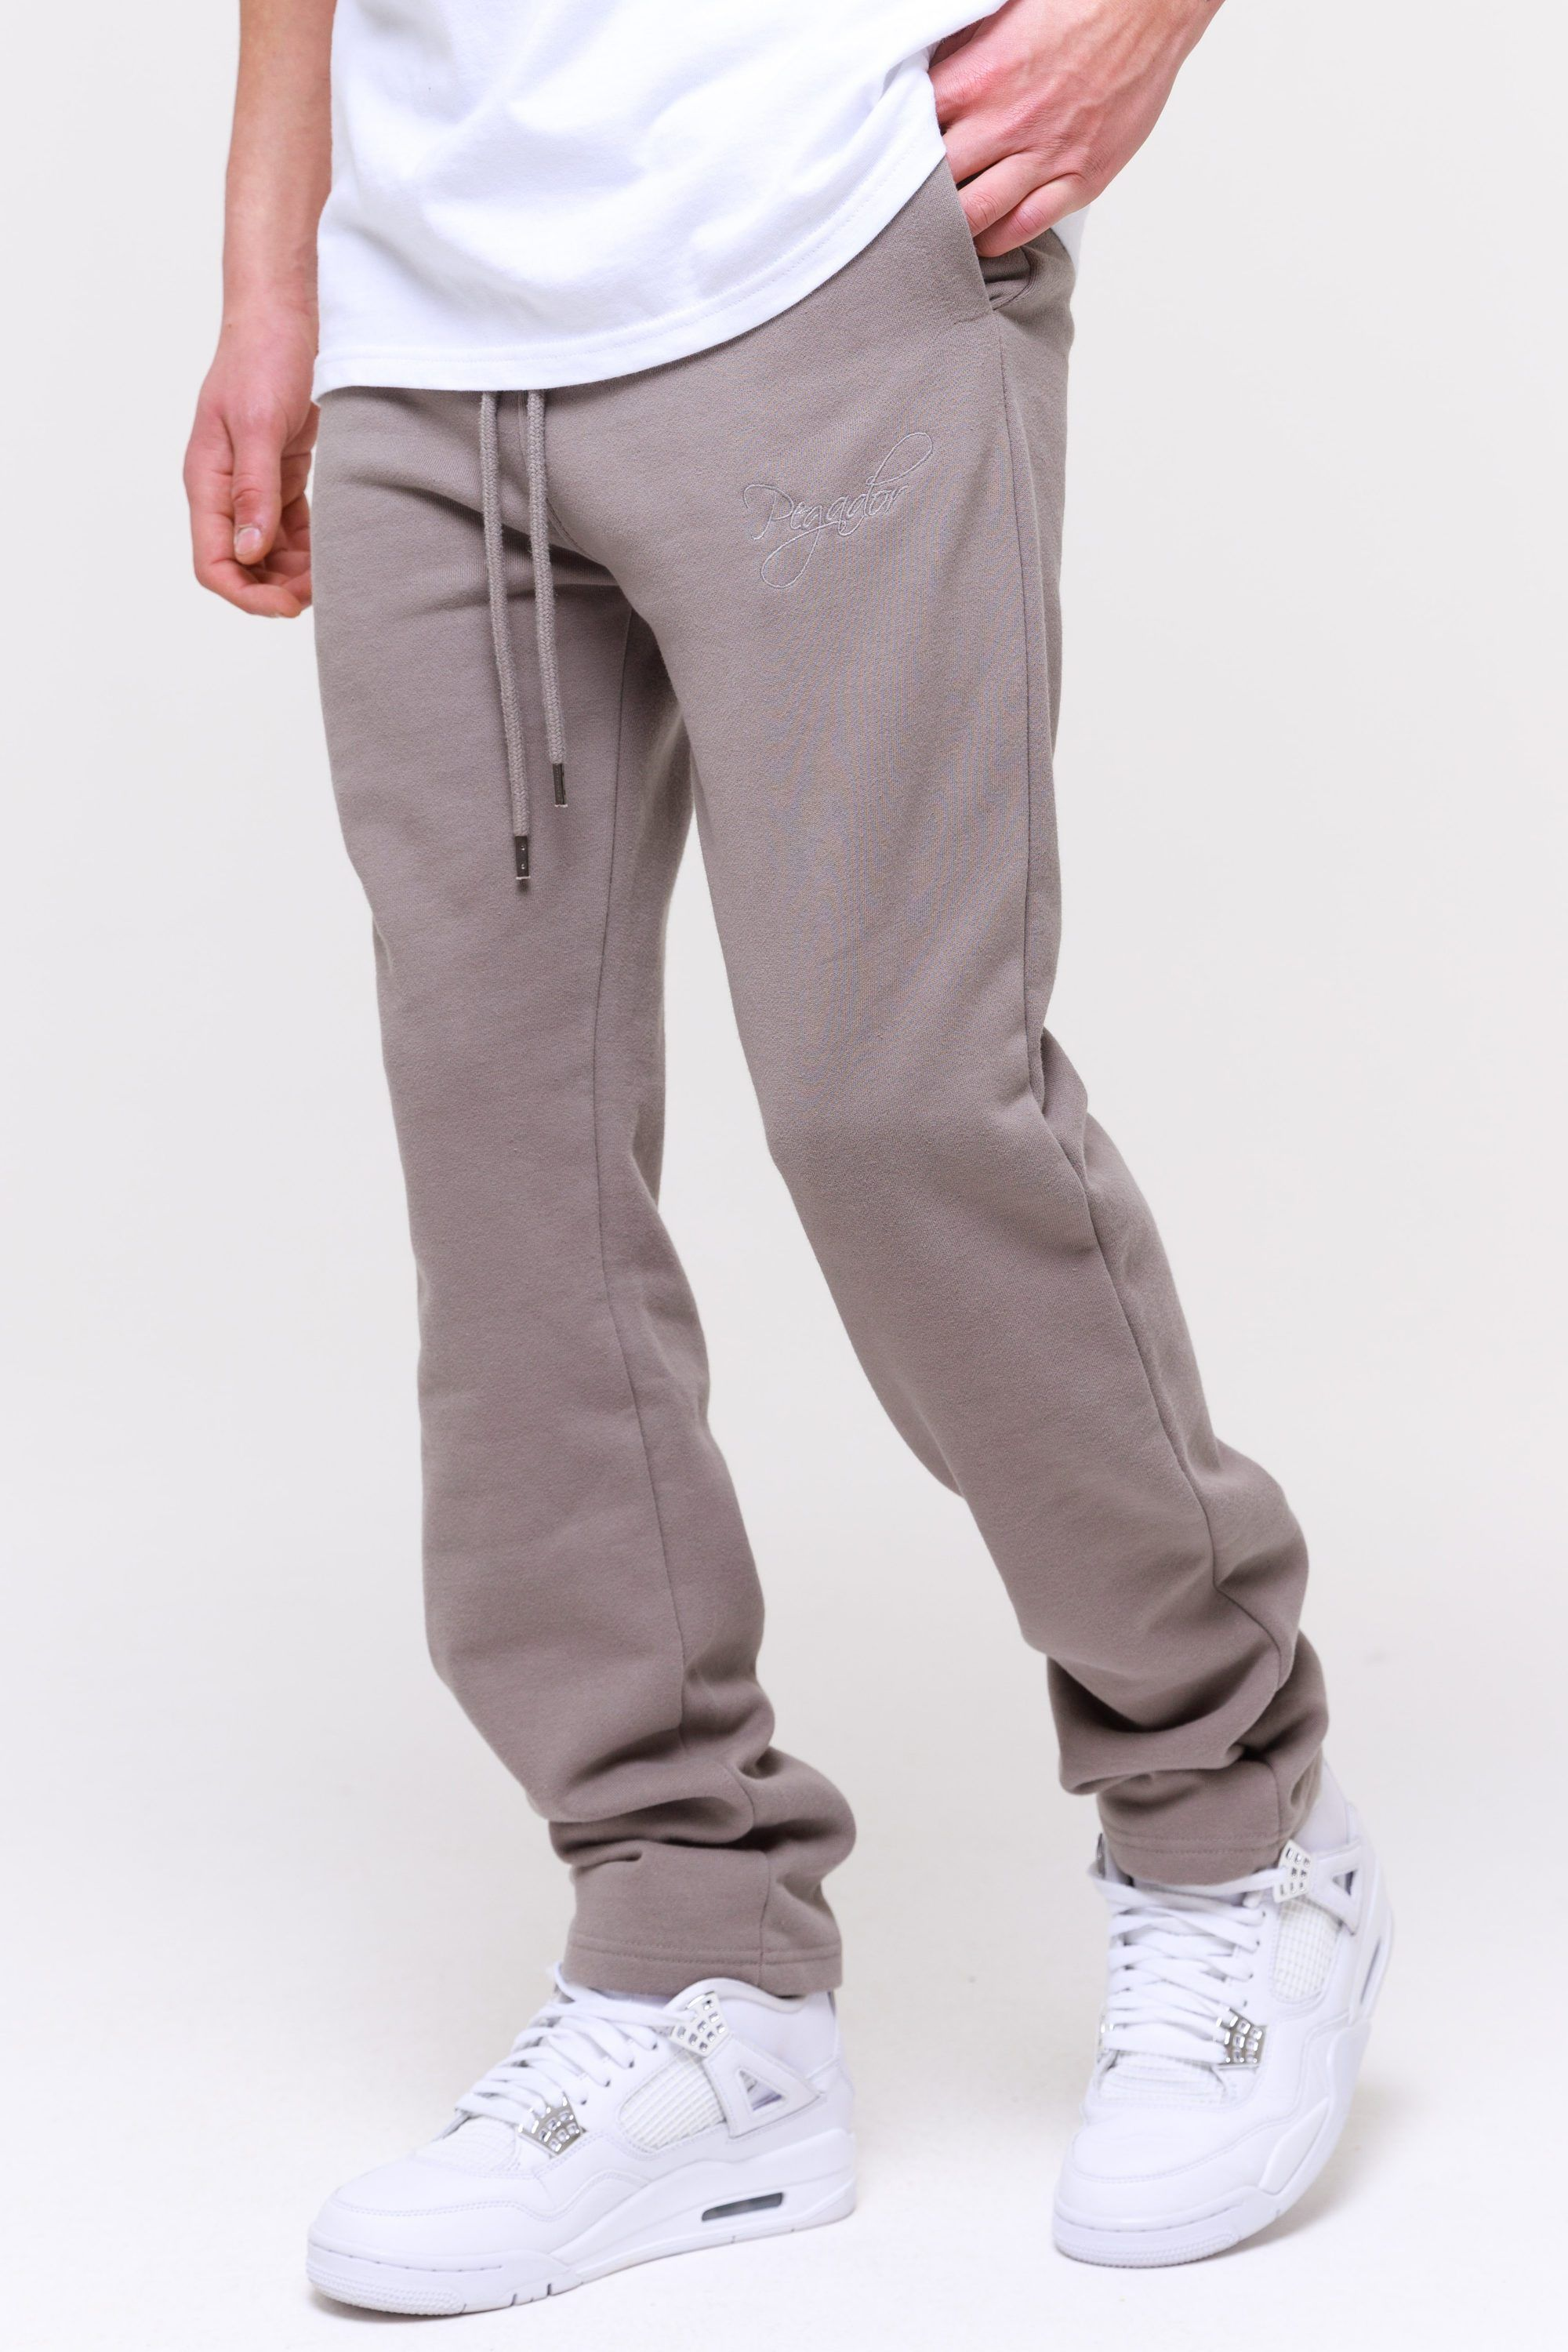 Yuma Wide Sweatpants Washed Frost Grey Pants Wild Society